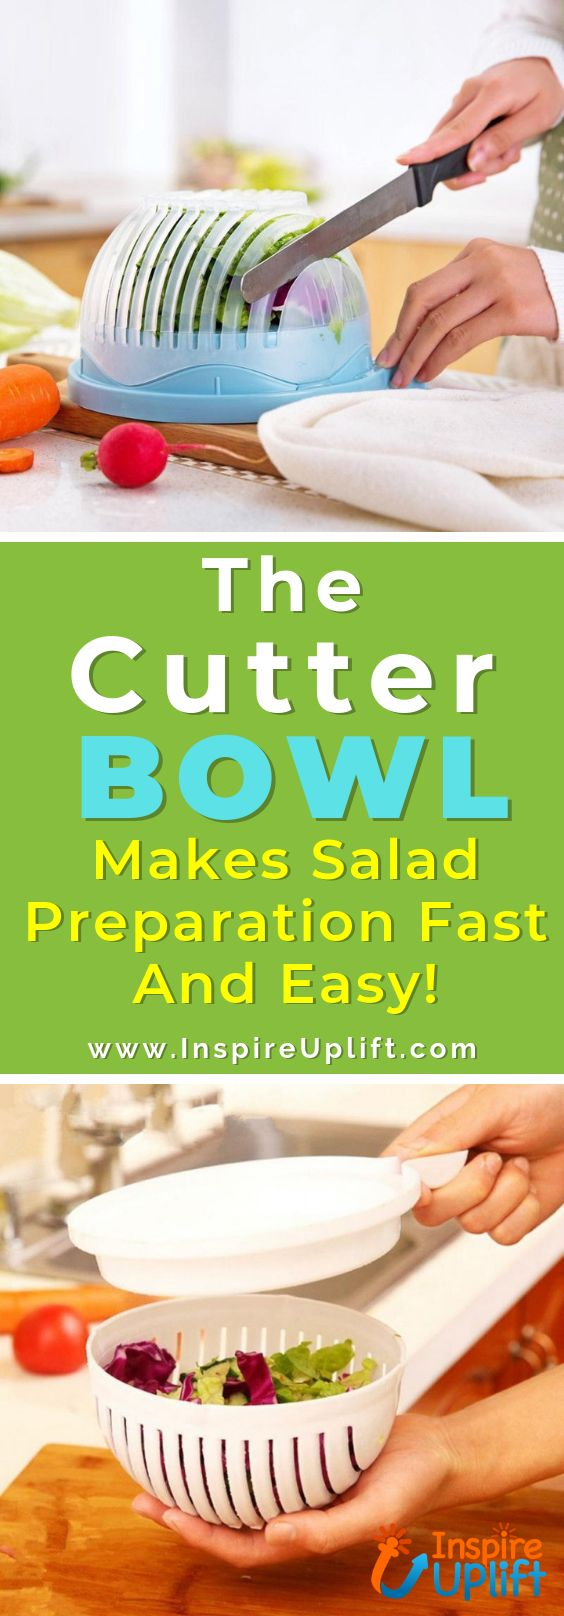 No one can deny that good home appliances, cooking utensils and kitchen products in general, make life more comfortable and convenient! This ingenious, kitchen device is so cool! Everyone LOVES a good chopped salad, but the time and effort it takes to cut all of those fresh veggies and fruits make it less appealing at times. Now, The Cutter Bowl makes salad preparation fast and easy!